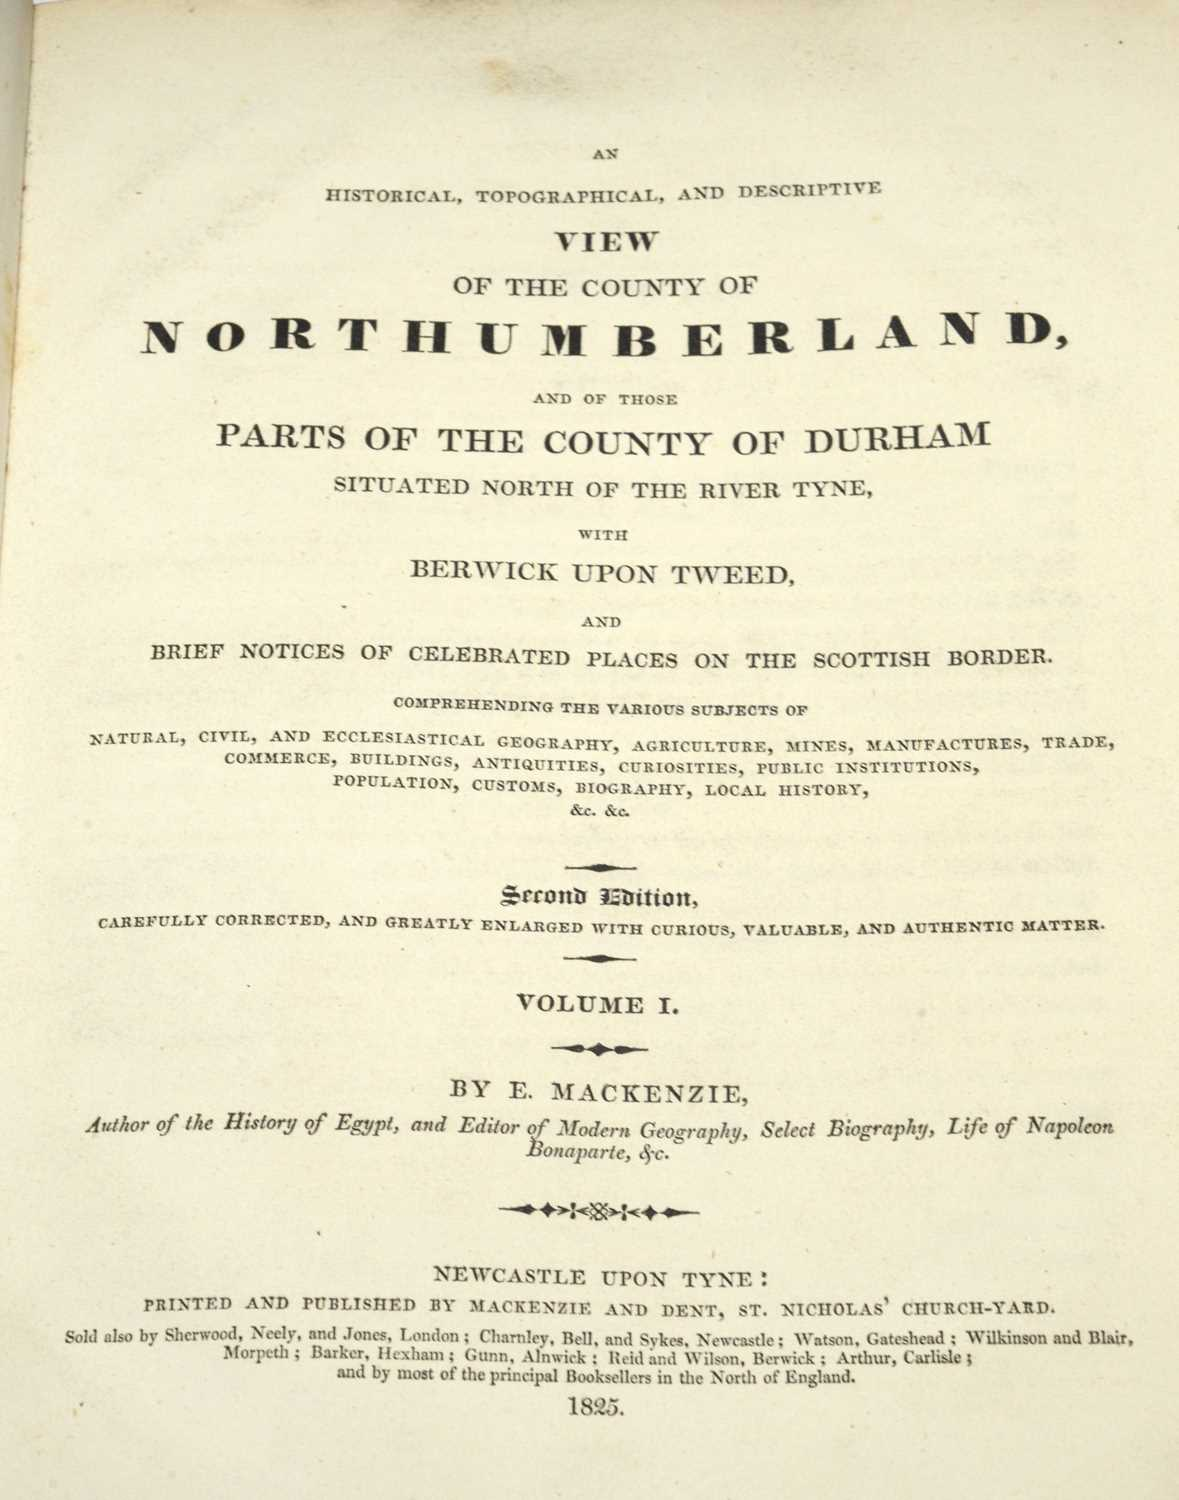 Mackenzie (E.) View of the County of Northumberland and parts of Durham, - Image 2 of 2